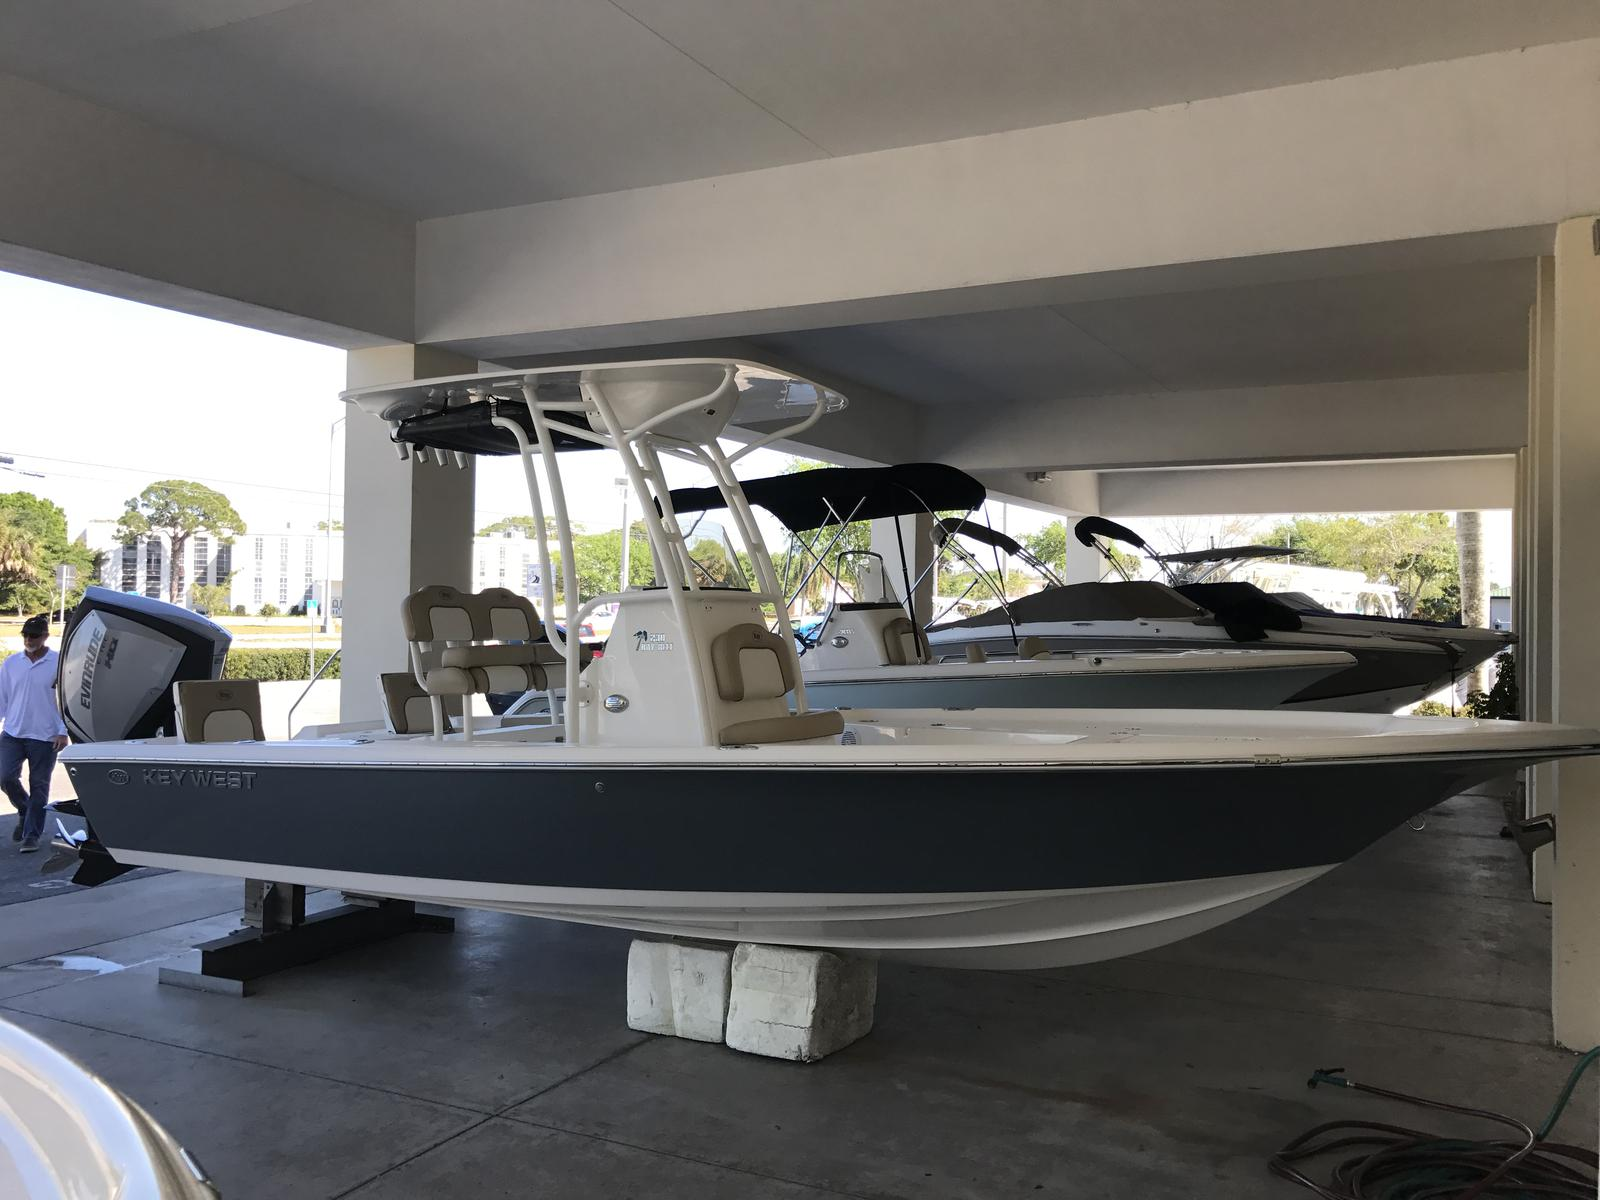 2017 Key West Boats Inc 230br For Sale In Sarasota Fl Sara Bay Power Boat Installation Fishing Hunting Kayak Marine Led 210 Img 0338